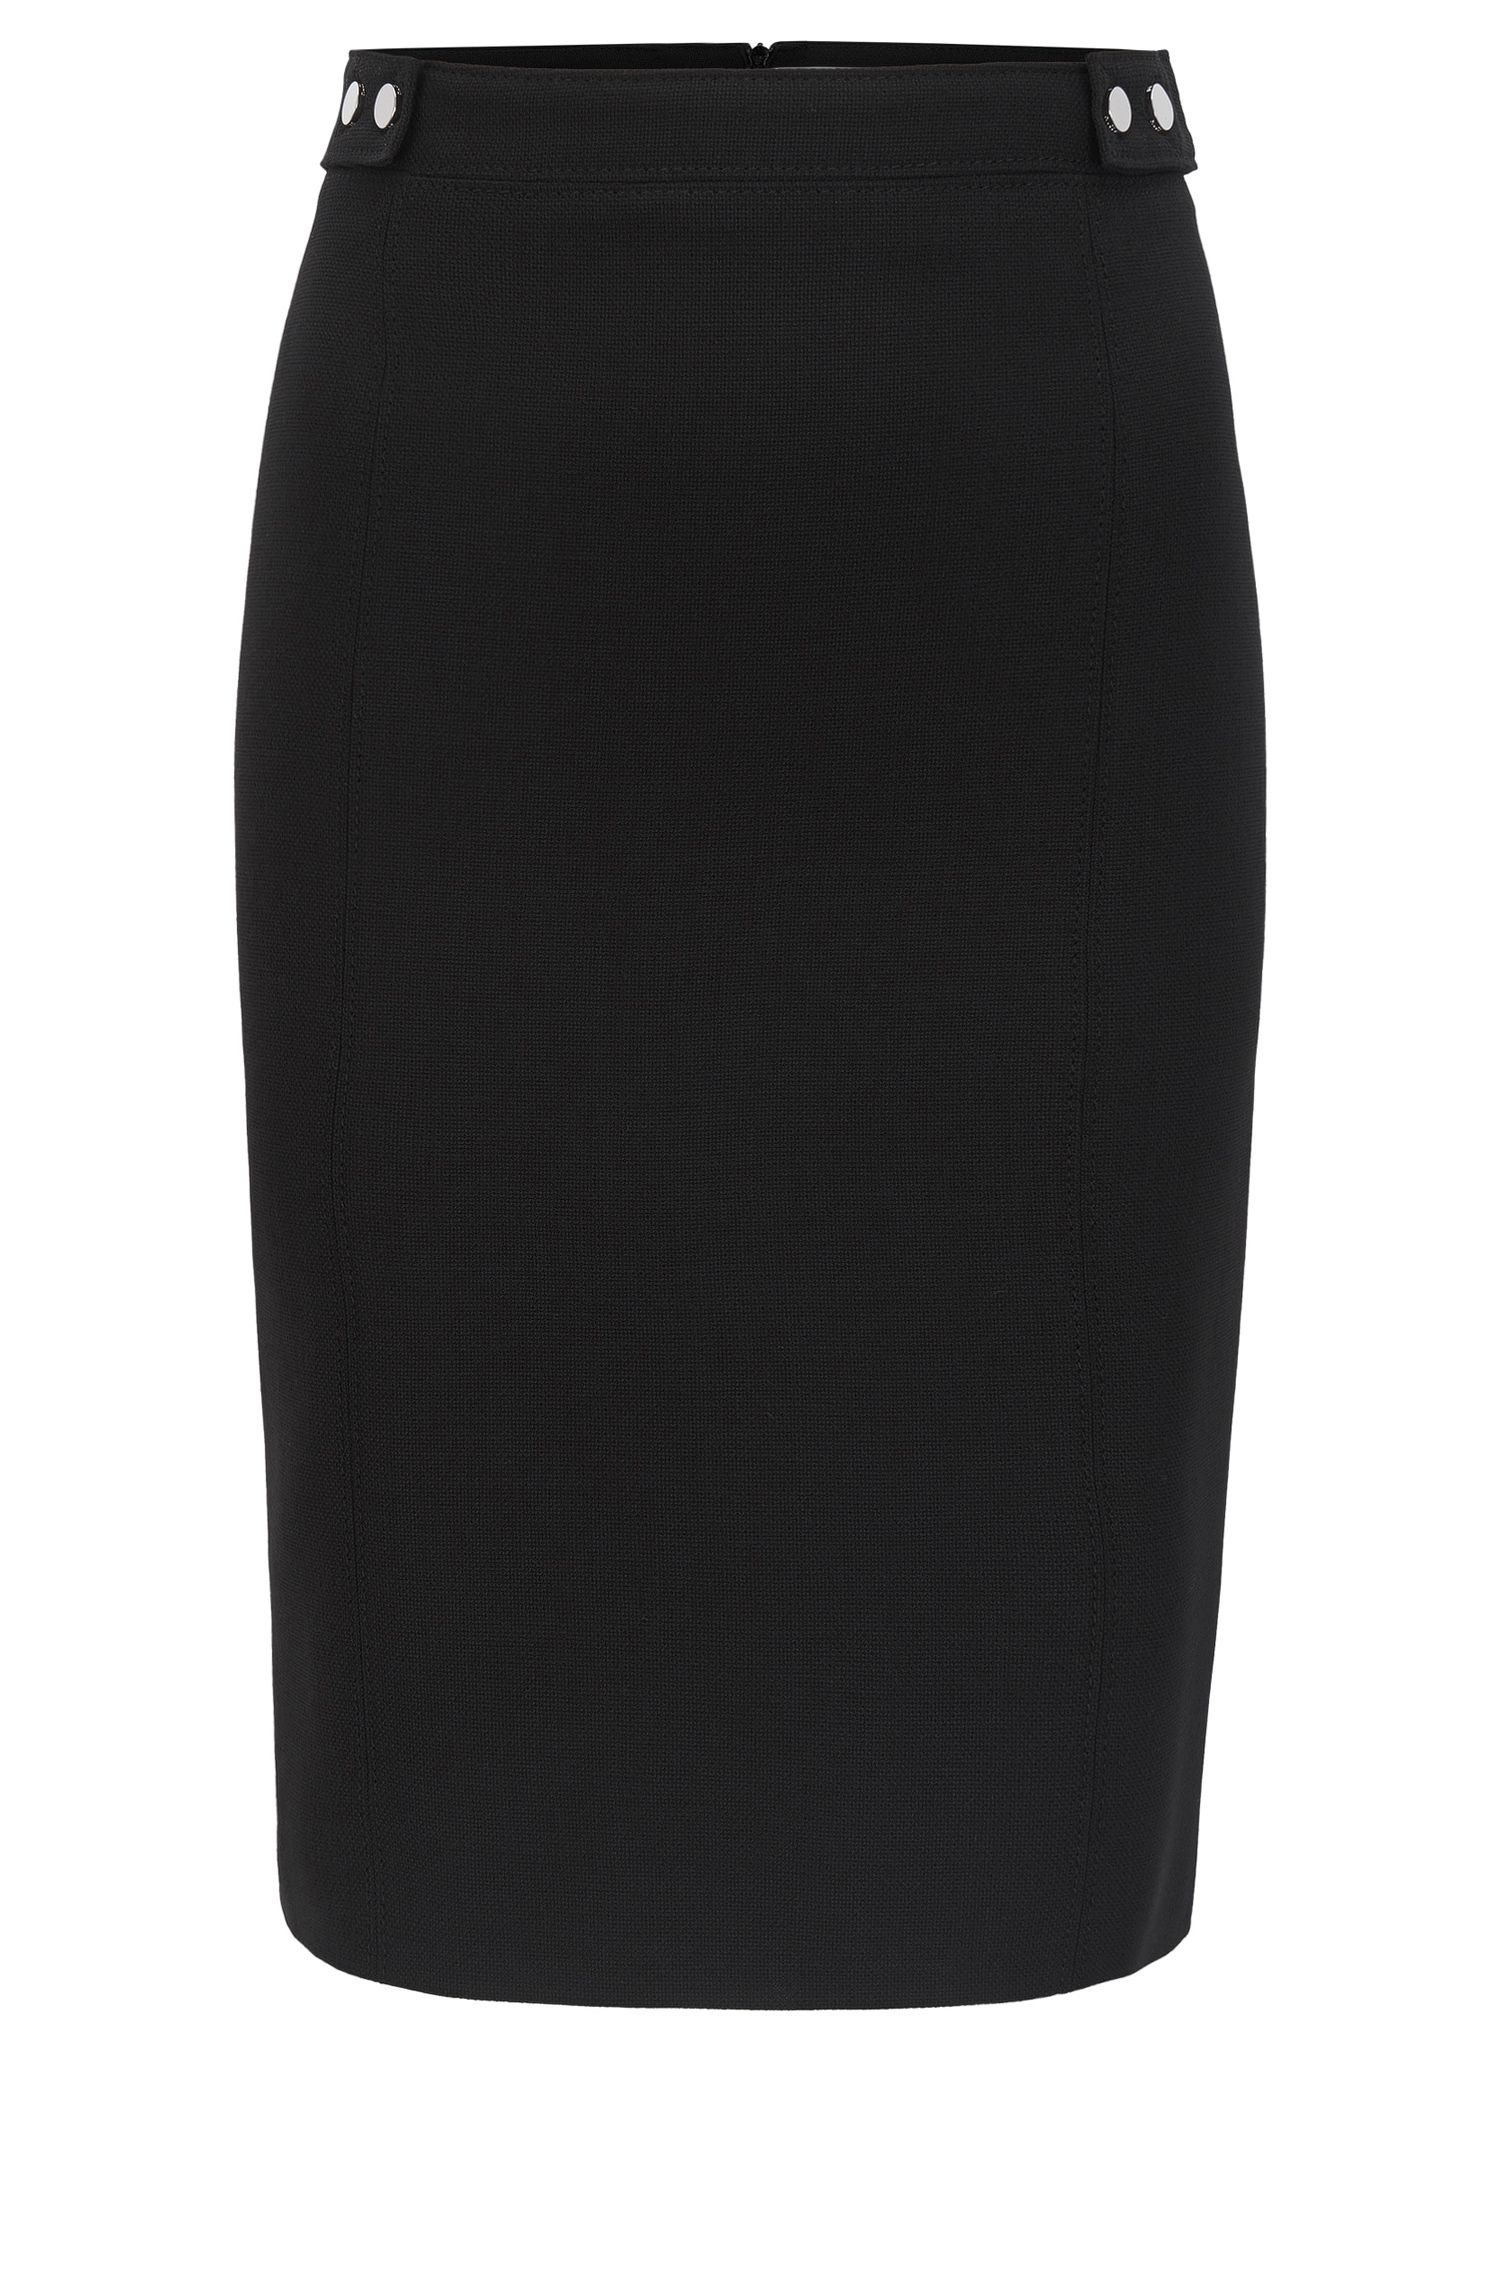 Pencil skirt in stretch virgin wool with stud details